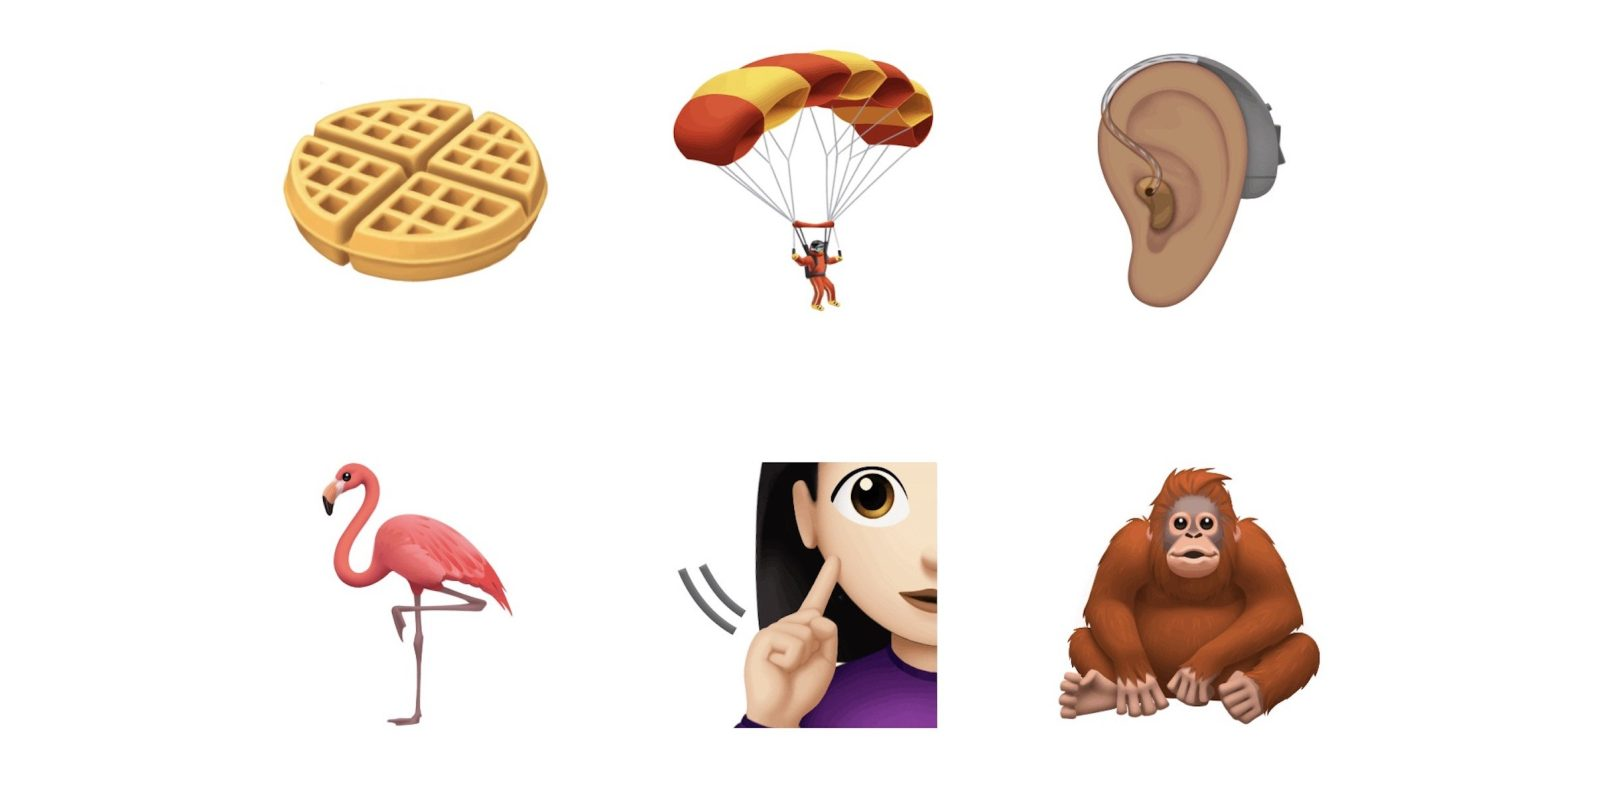 What's new in iOS 13.2 beta 2? New emoji, Siri privacy setting, more